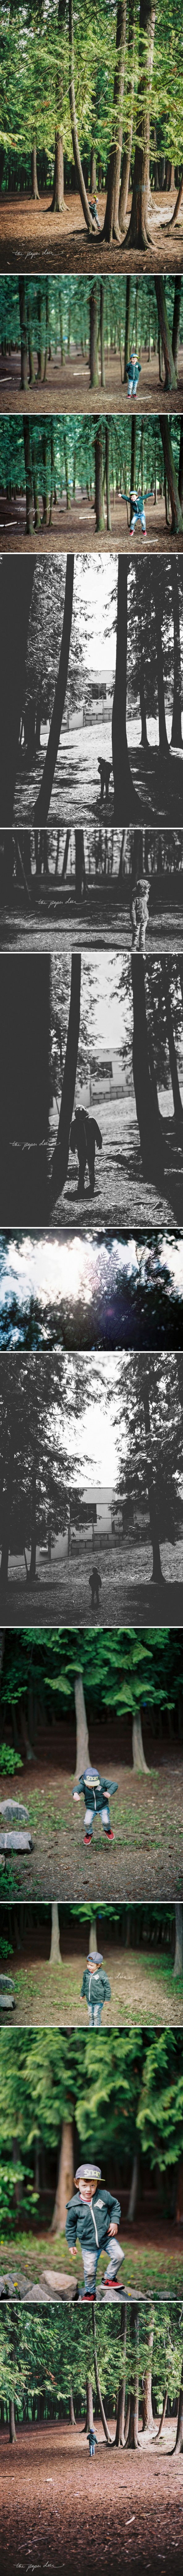 film photography | ©The Paper Deer Photography | paperdeerphoto.com